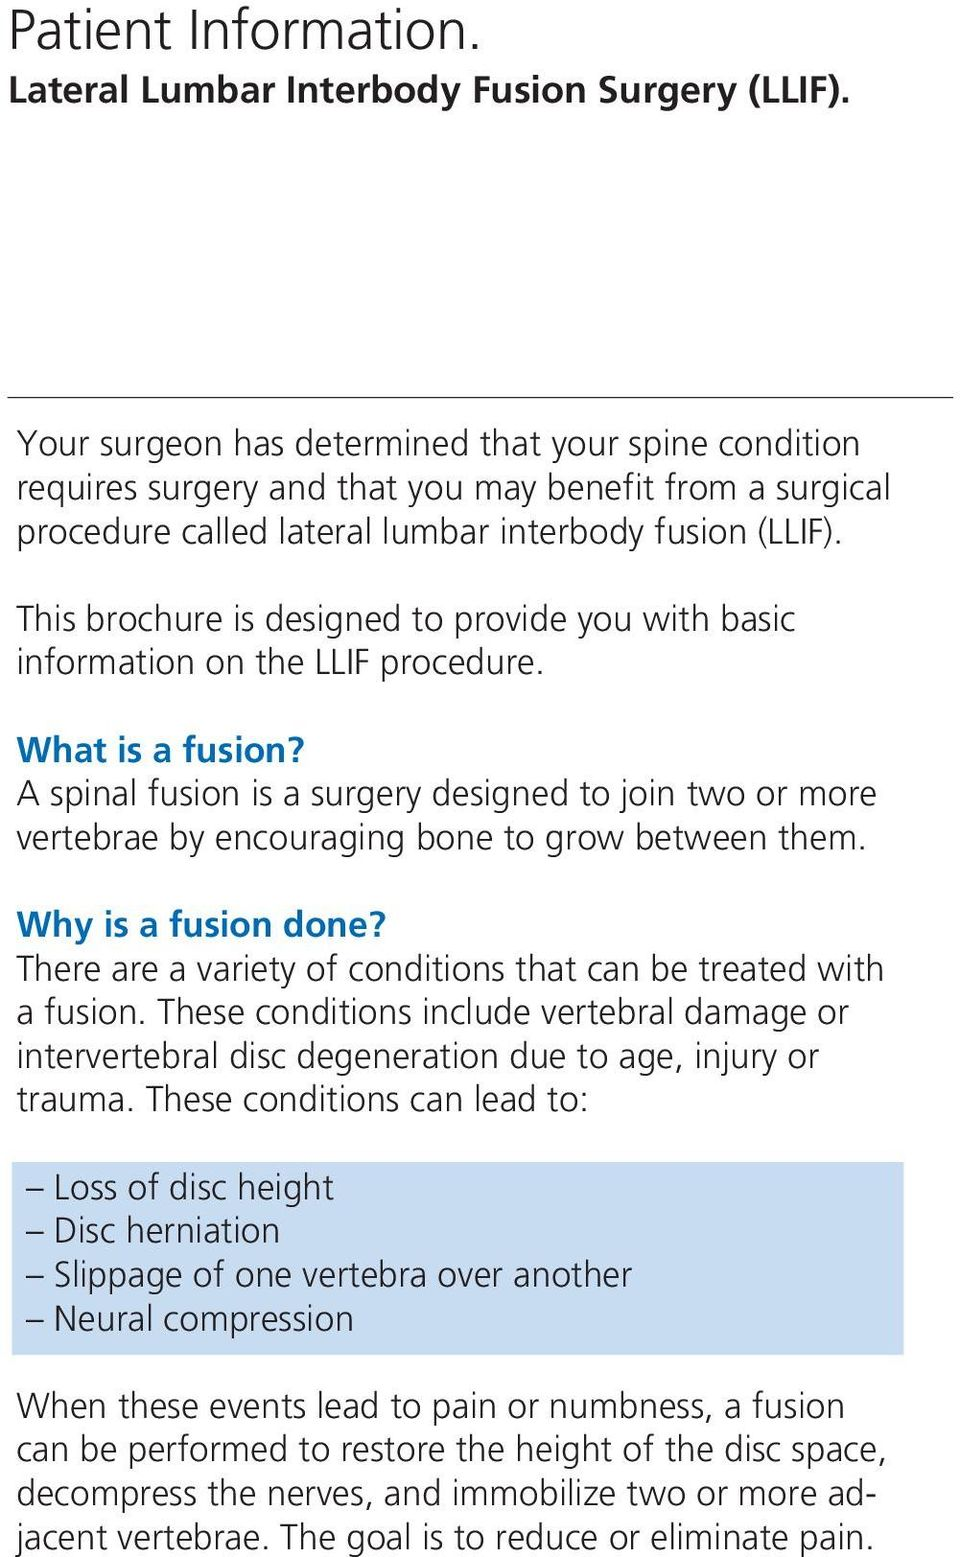 This brochure is designed to provide you with basic information on the LLIF procedure. What is a fusion?